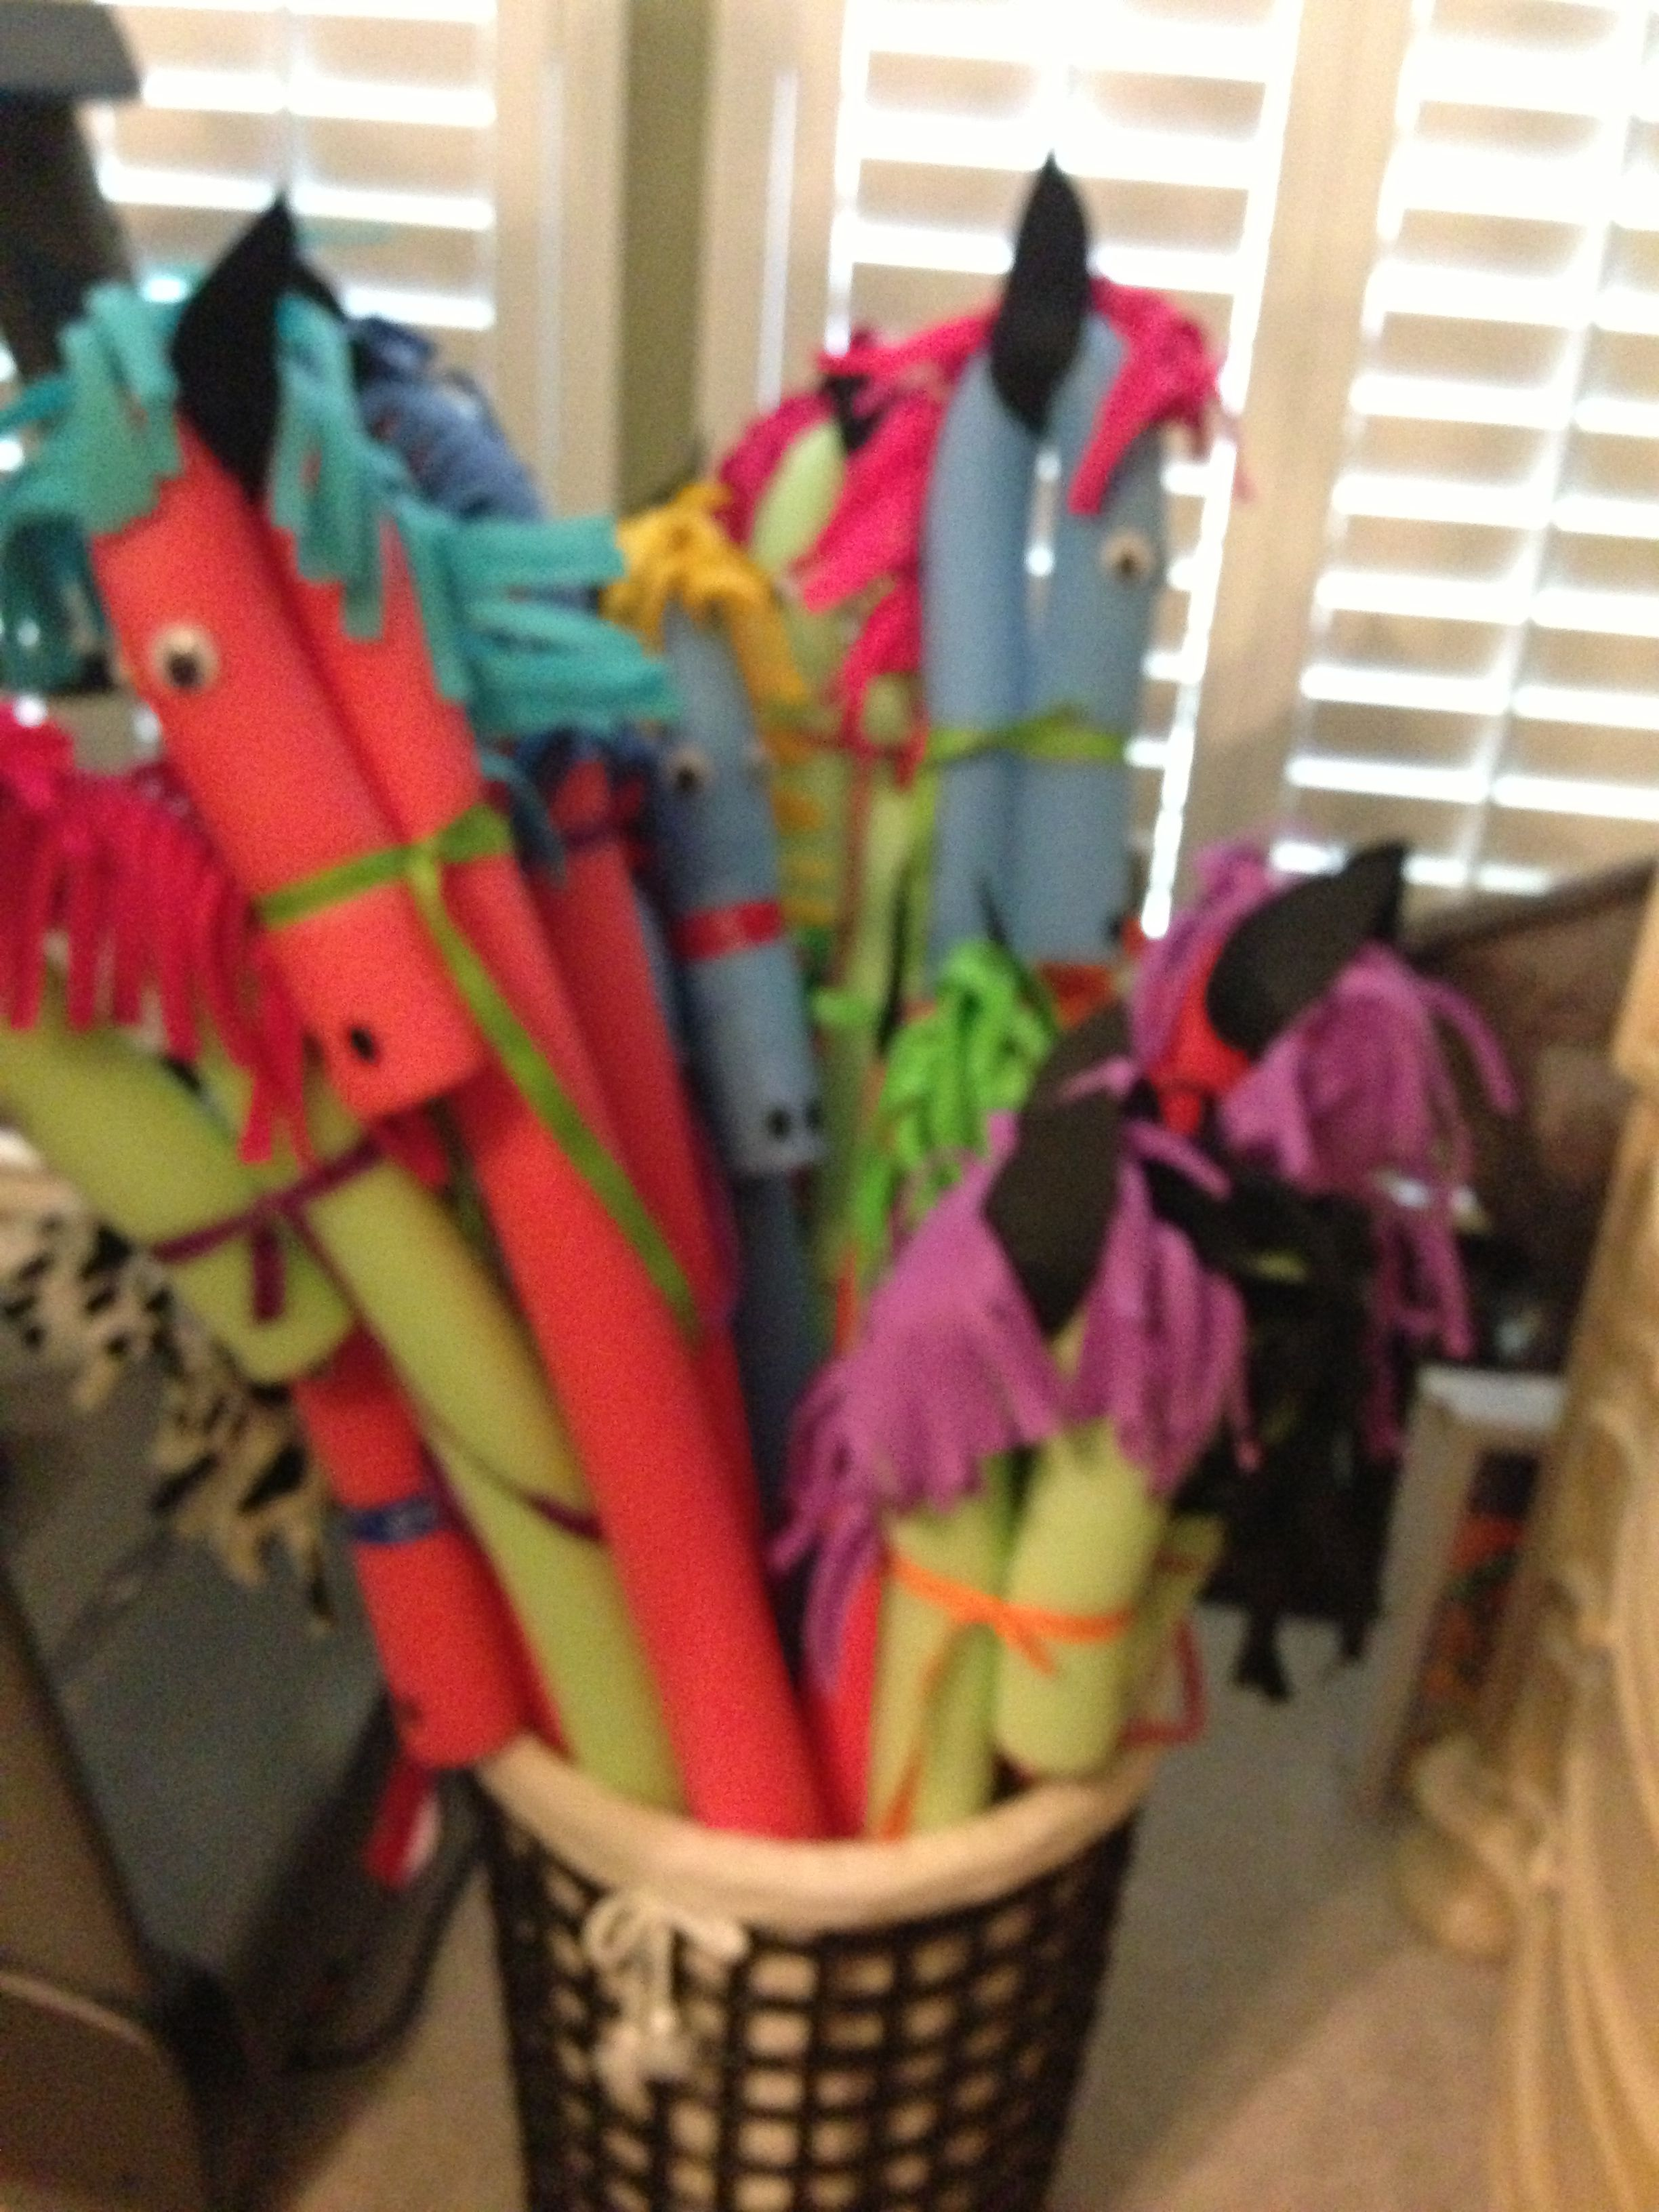 pool noodle stick horses-then you can make them smaller for little kids and the stick won't break the tv :)